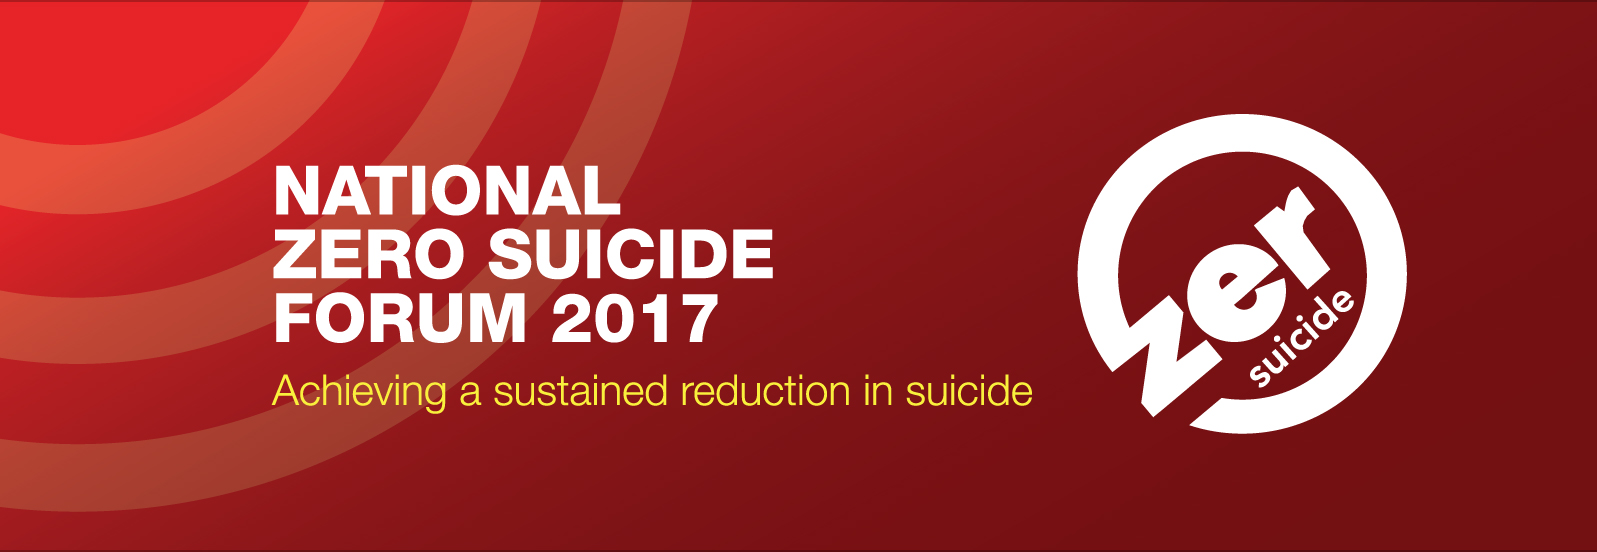 National Zero Suicide Forum 2017